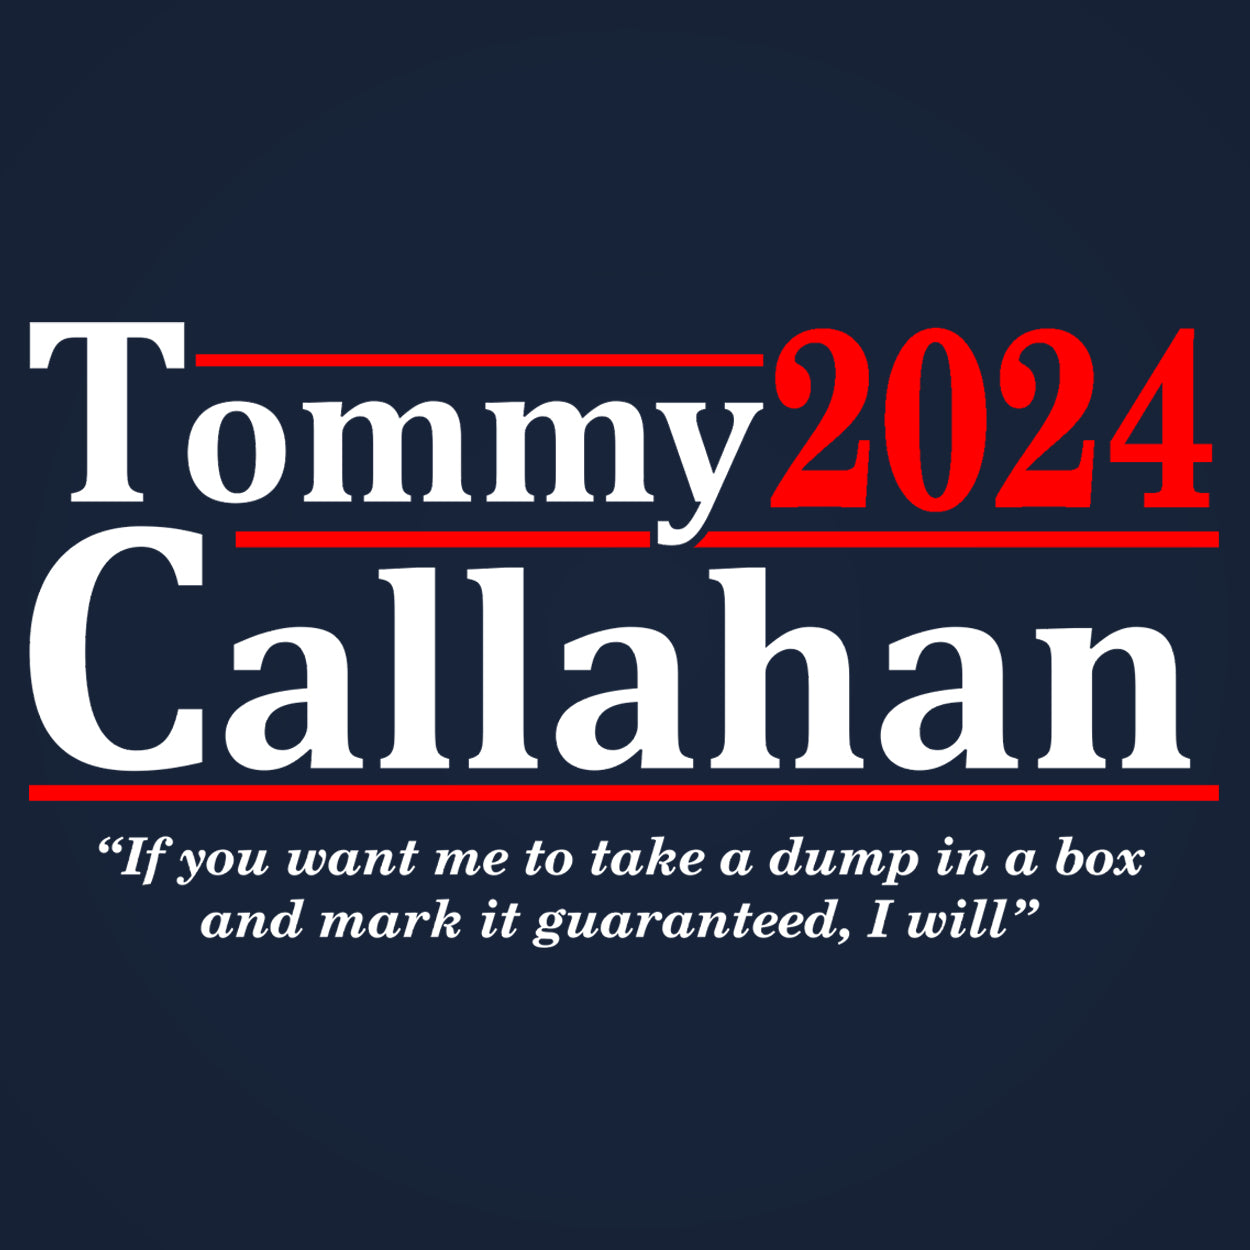 Tommy Callahan 2020 Election - DonkeyTees